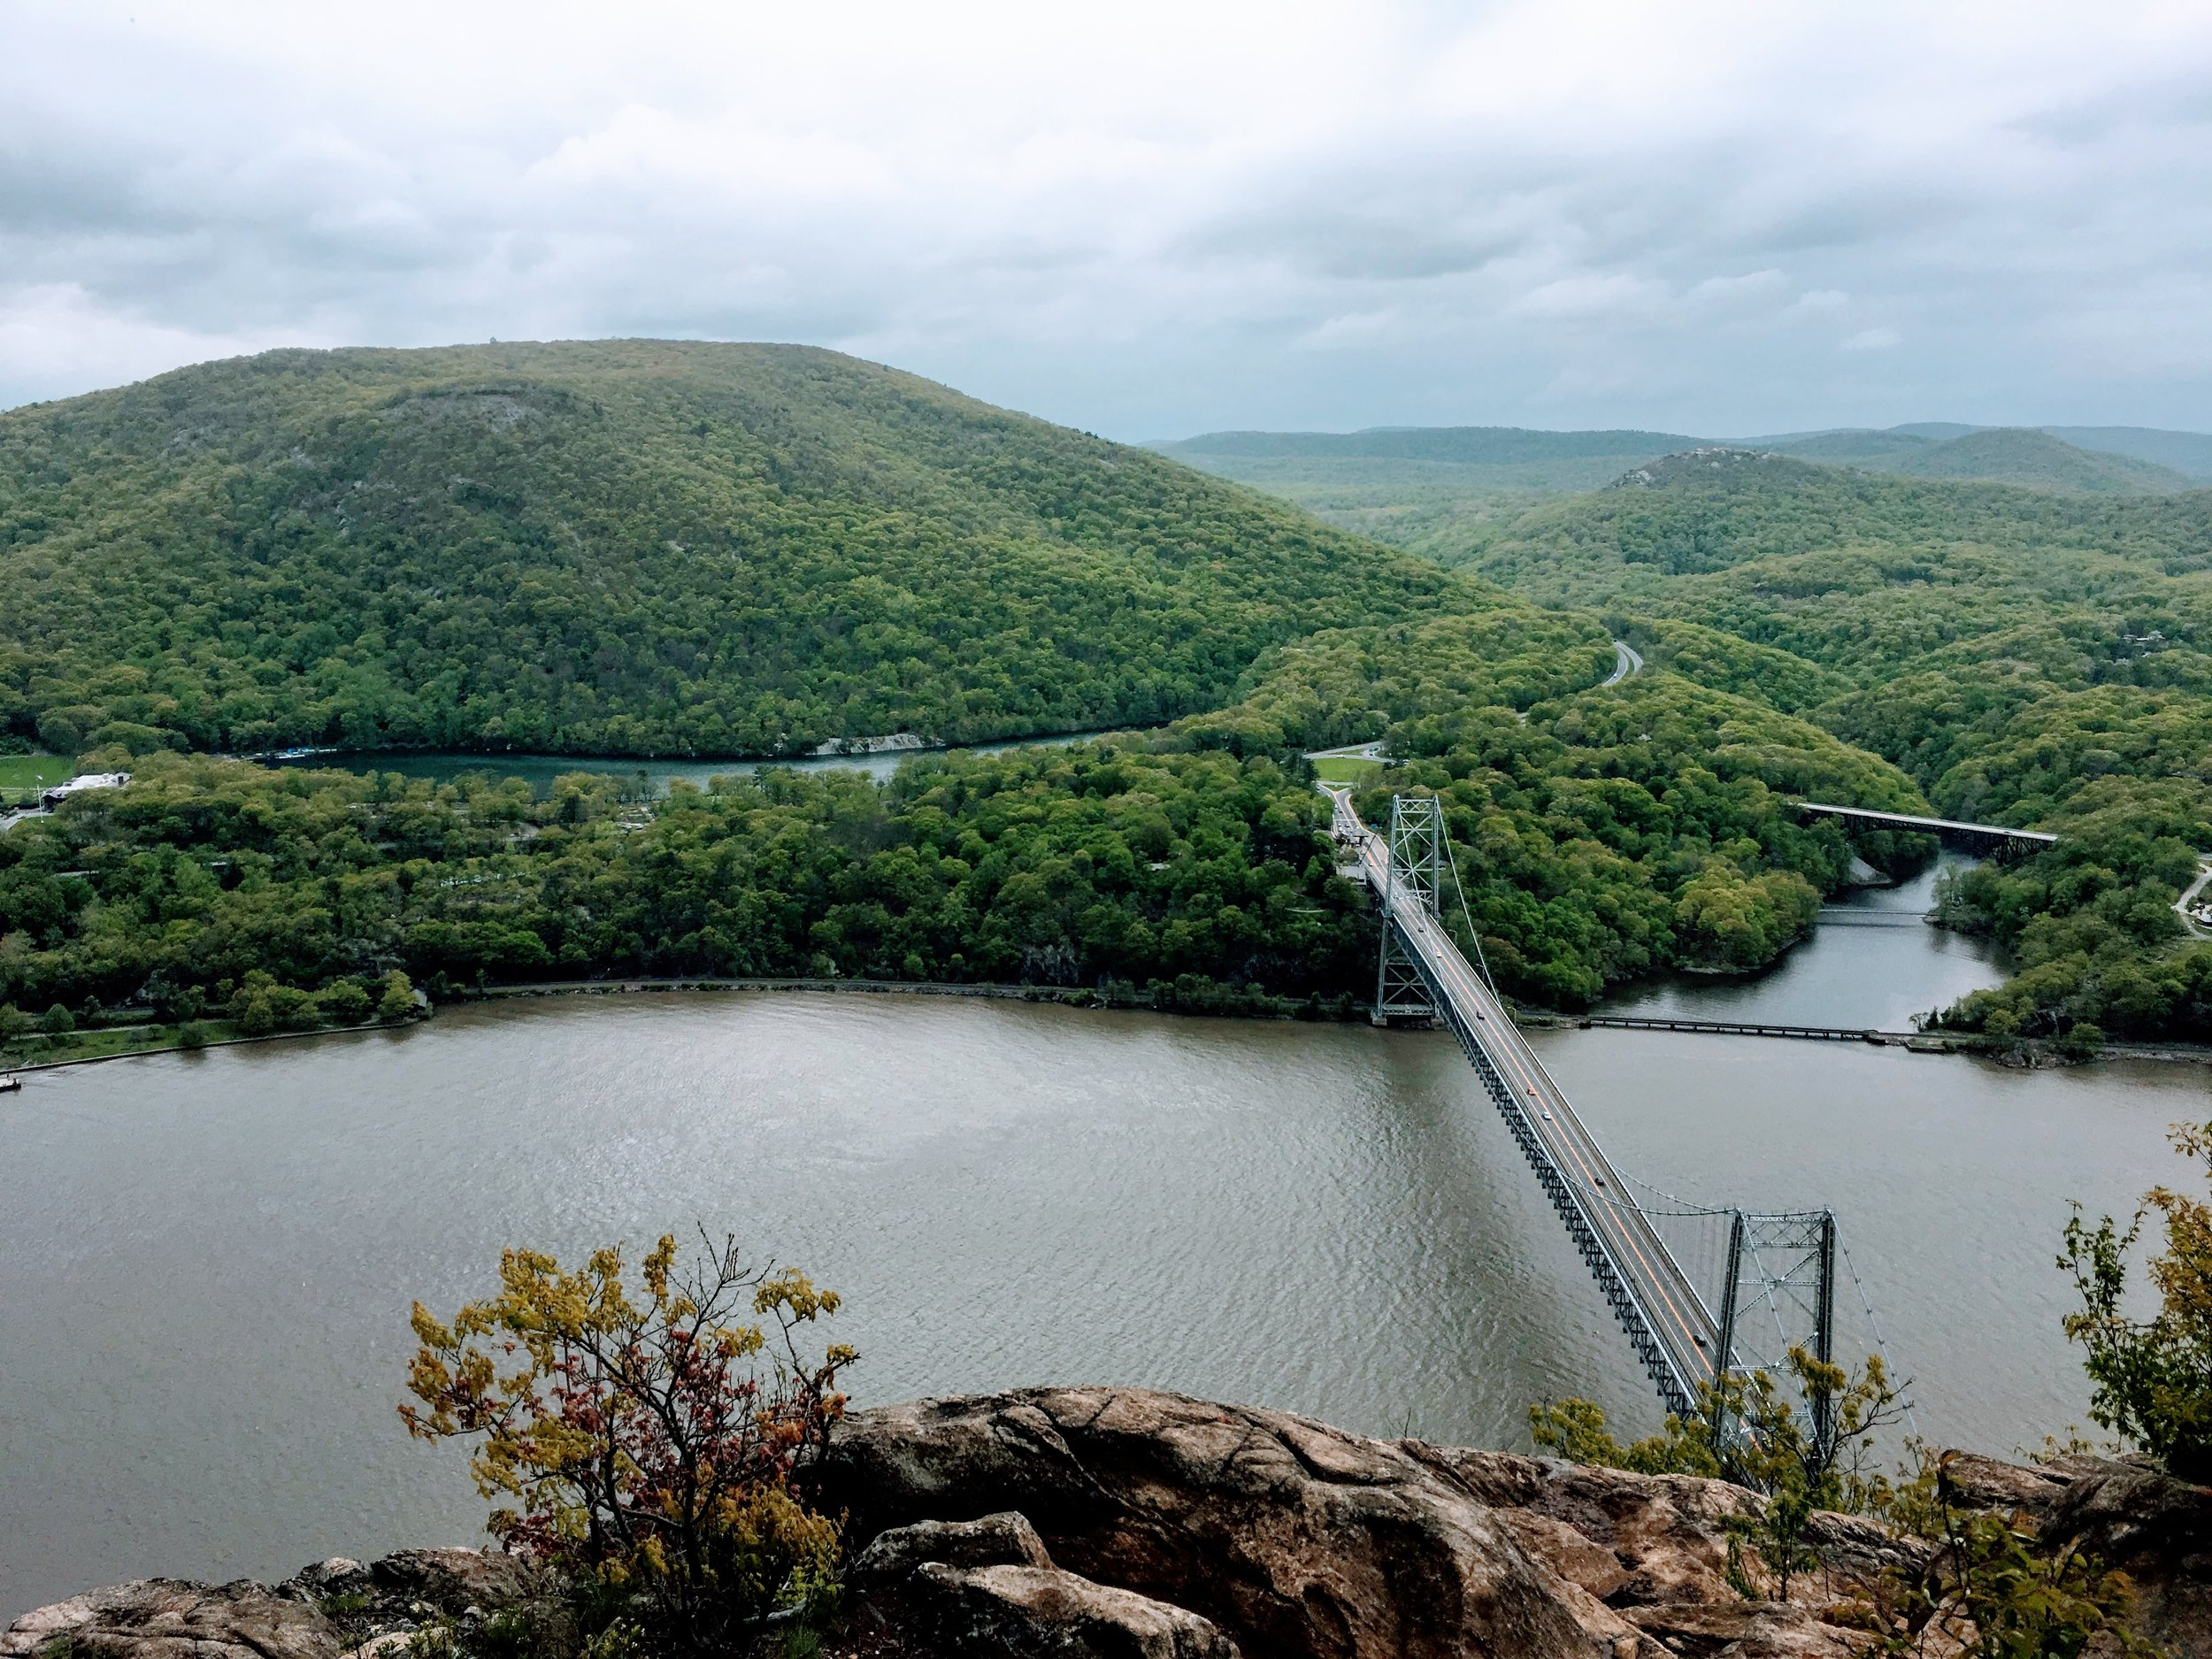 Anthony's Nose - Hudson Highlands - Summit overlooking the Bear Mountain bridge, via Camp Smith Trail - Spring 2017